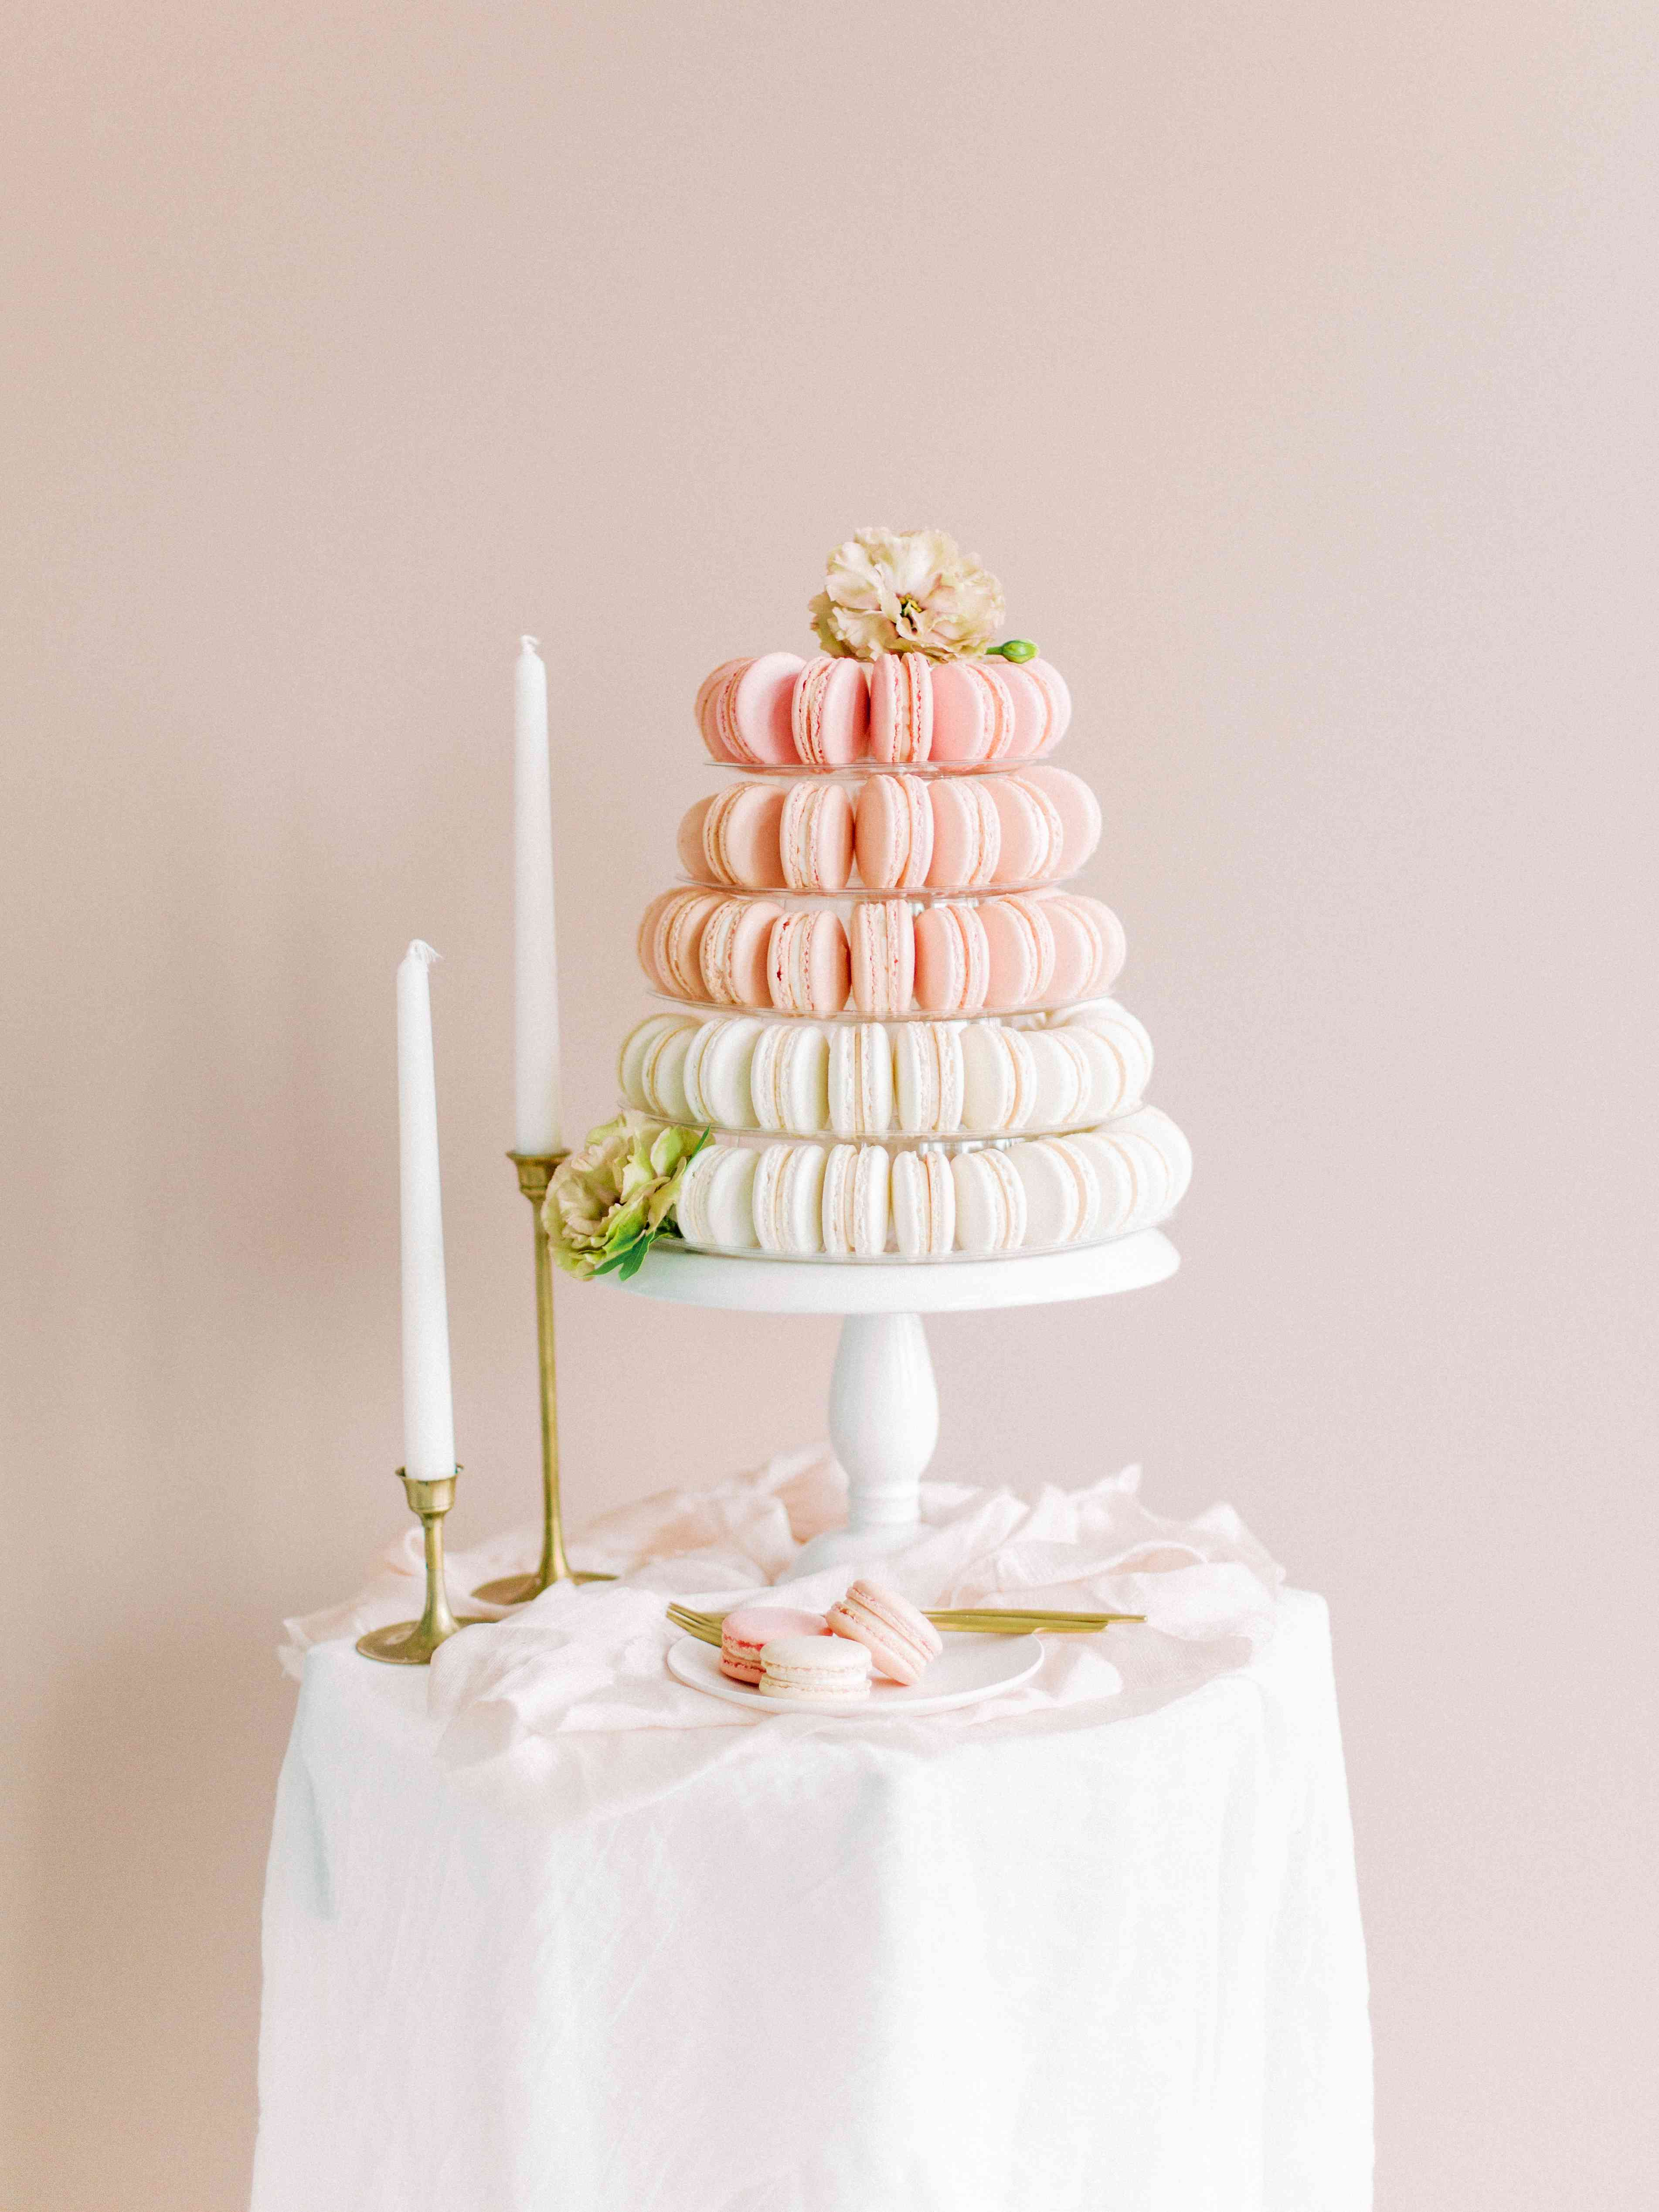 Pink and white macaron tower